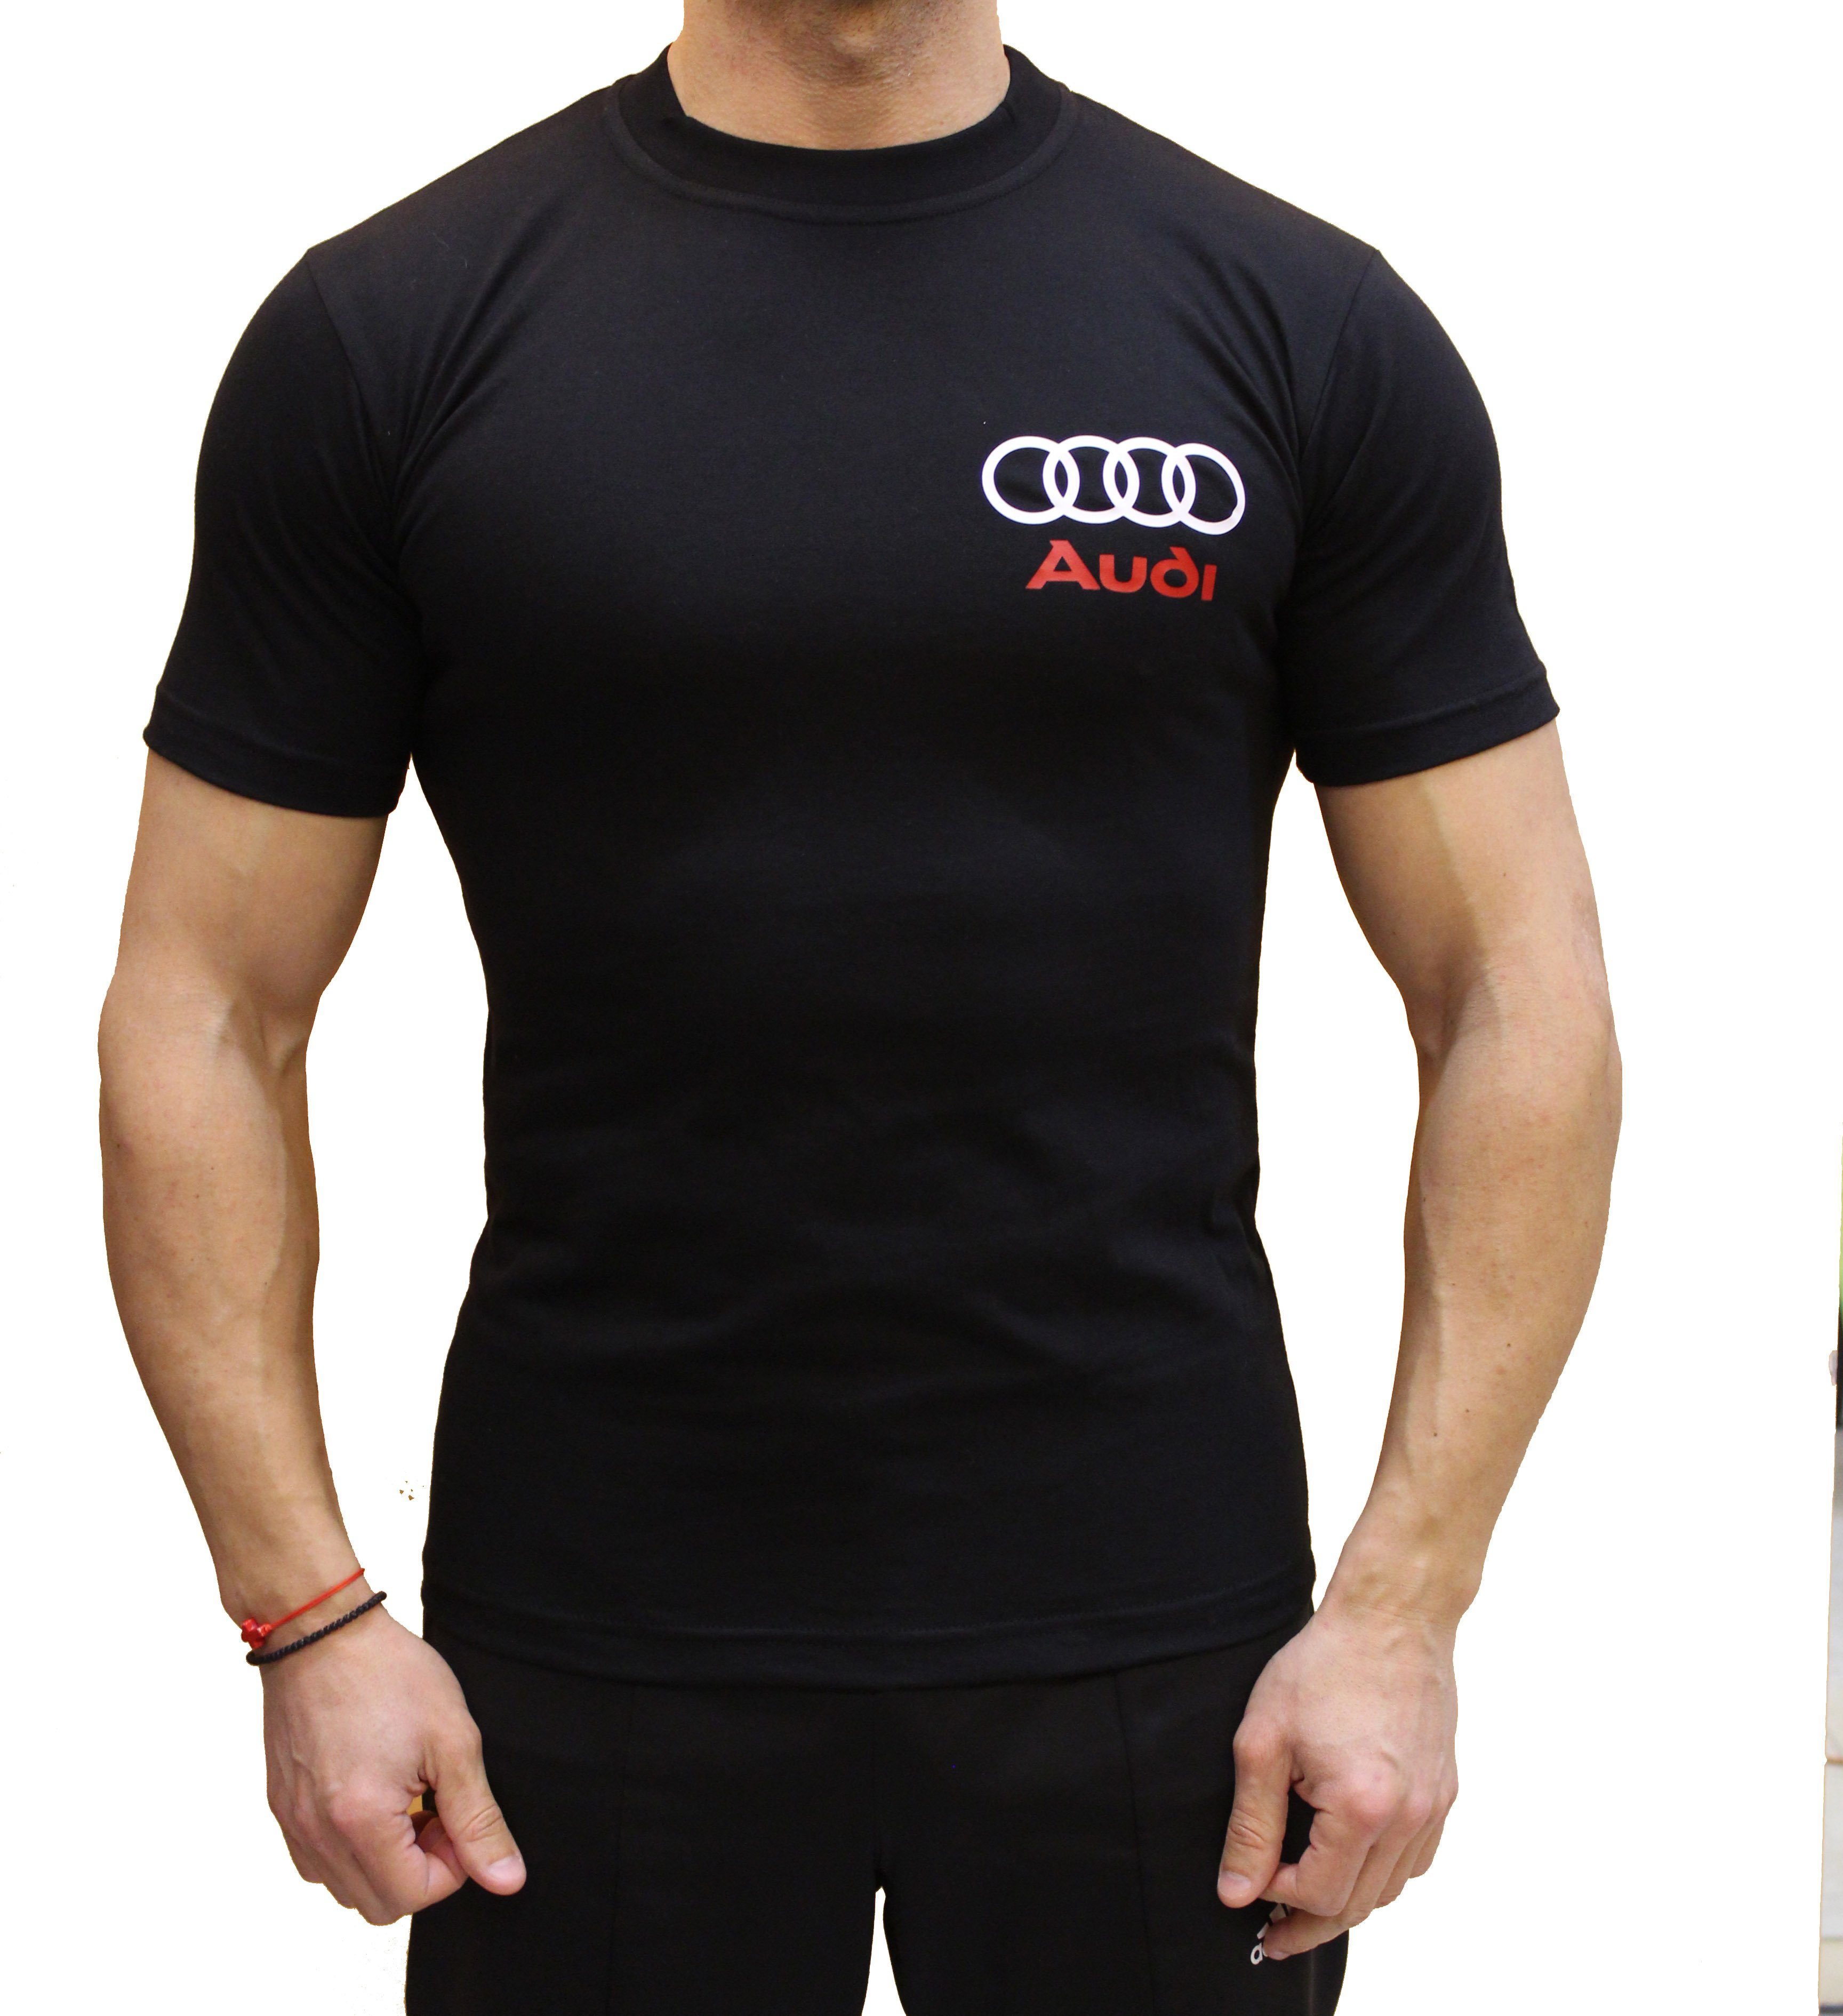 audi rs5 t shirt designed and hand crafted by auto moto fans. Black Bedroom Furniture Sets. Home Design Ideas